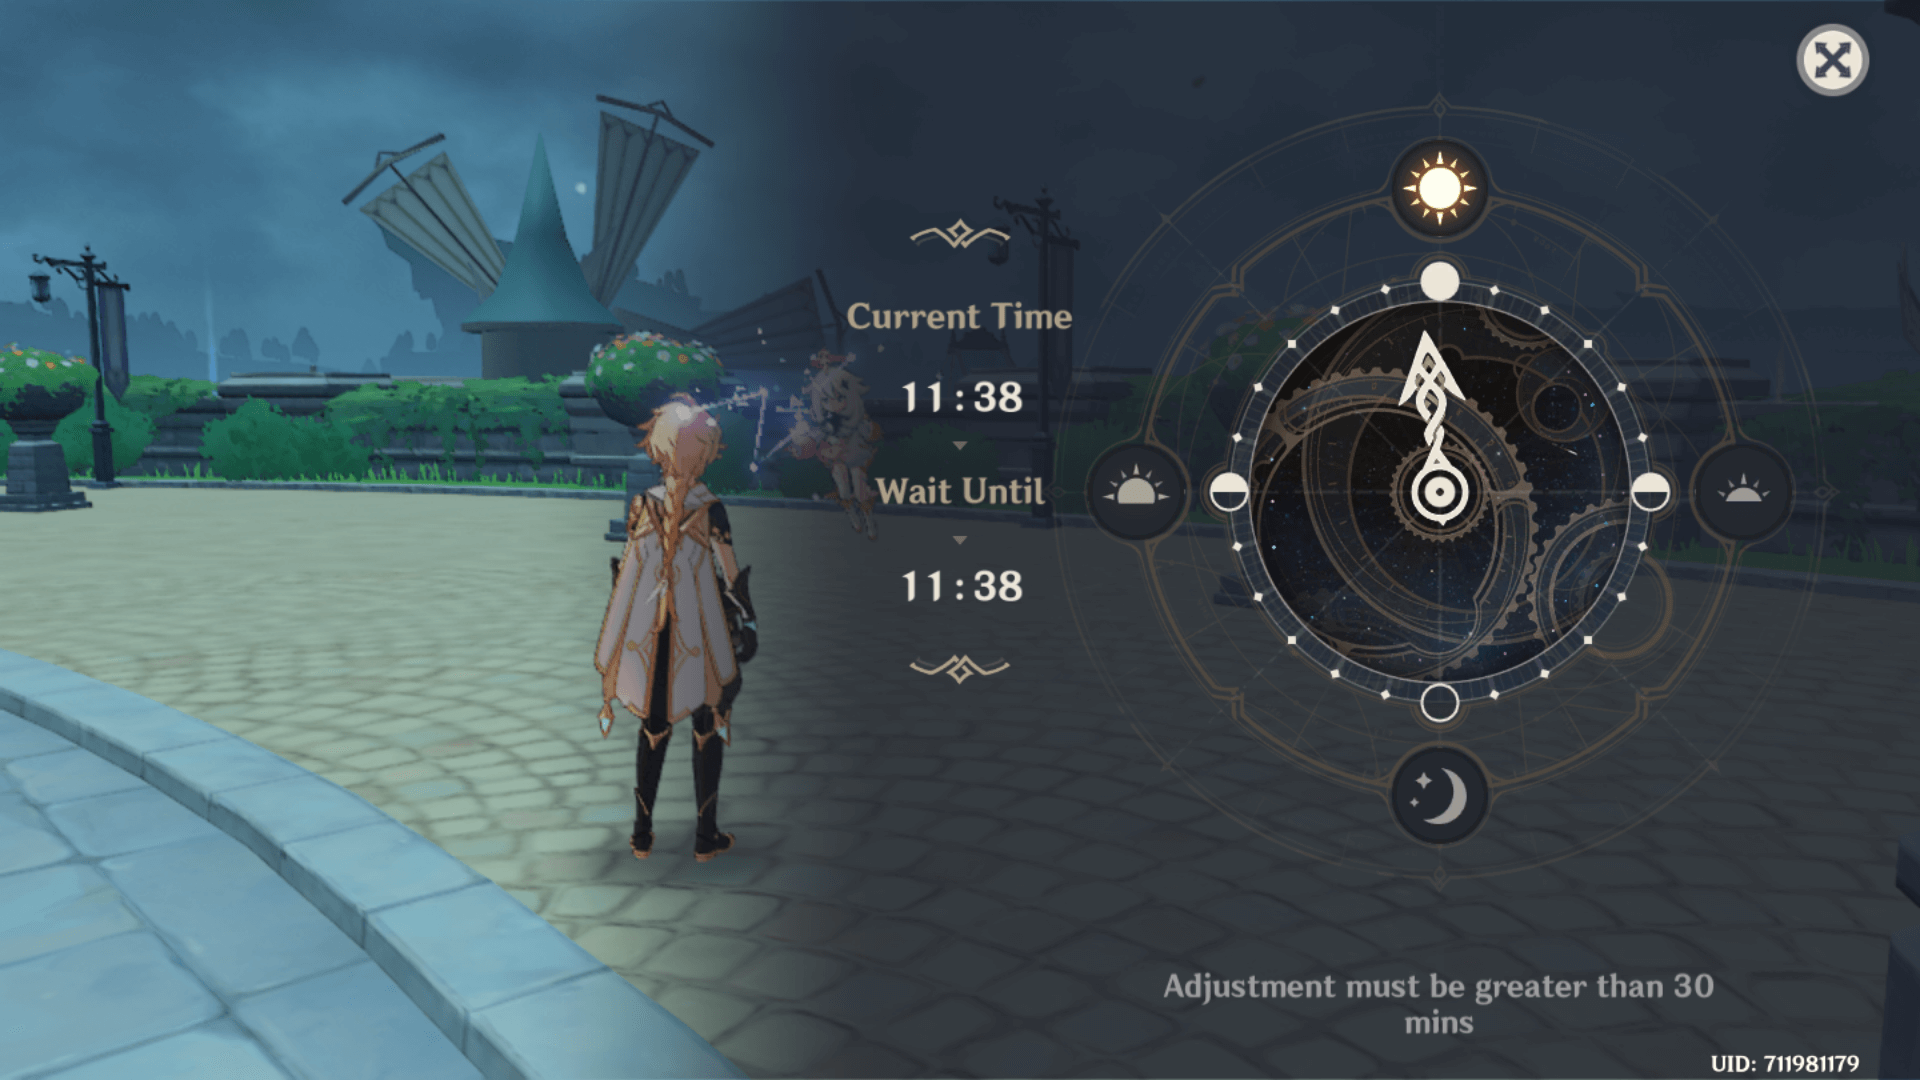 Current time screenshot of Genshin Impact Mobile video game interface.